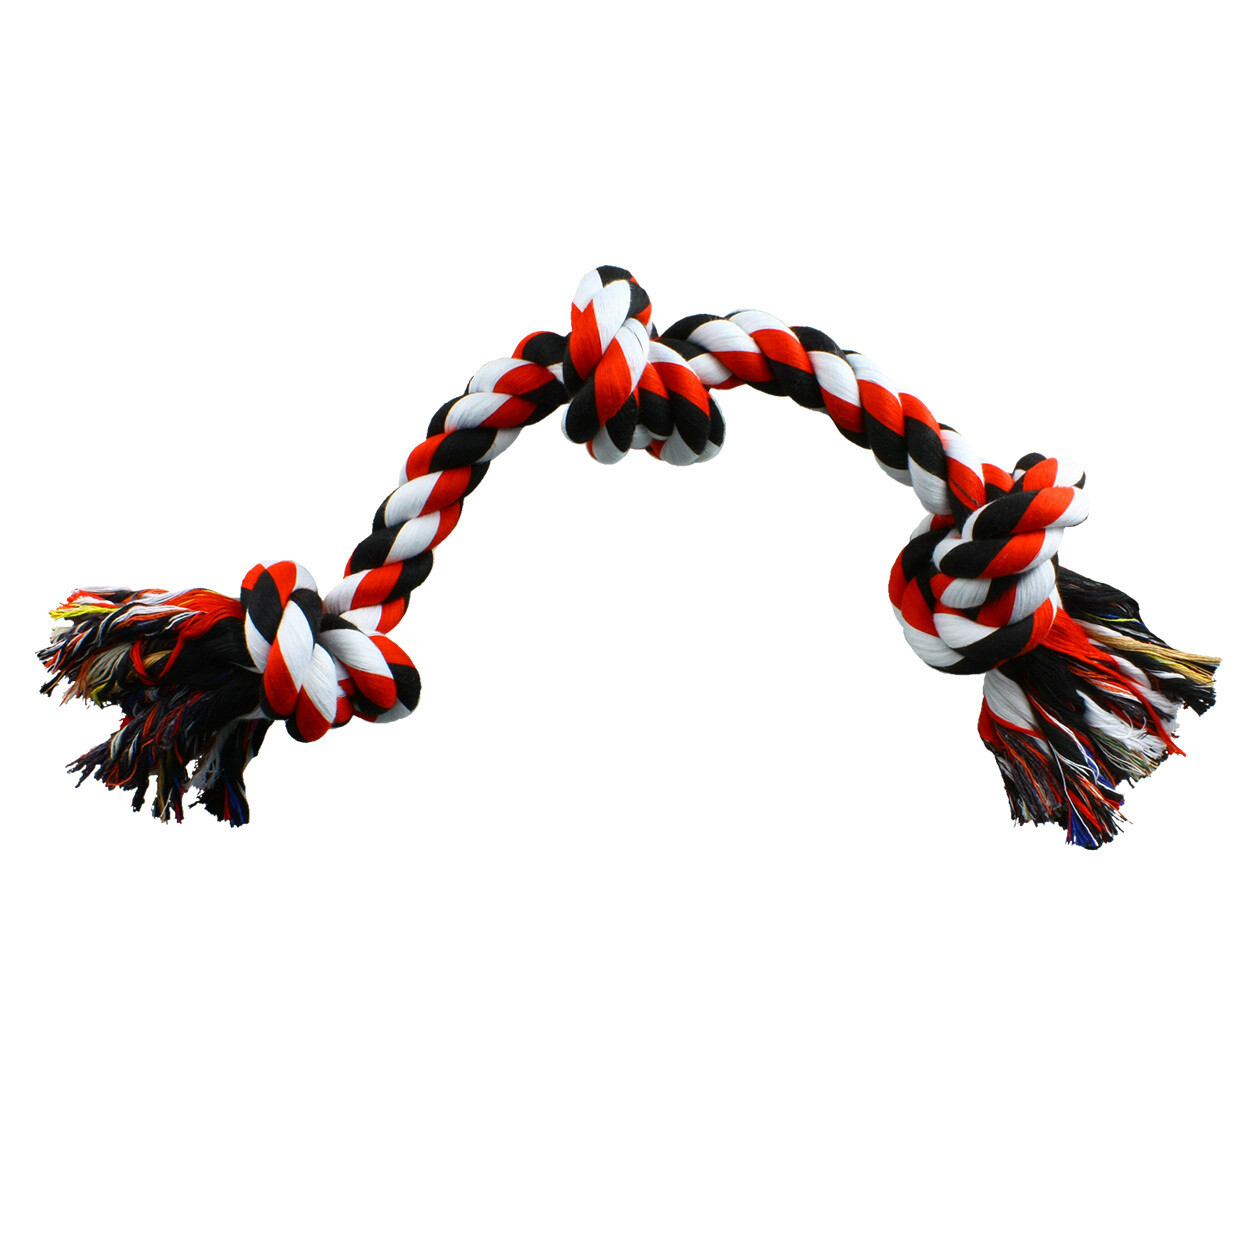 "Animal Treasures 20"" 3 Knot Rope Toy"